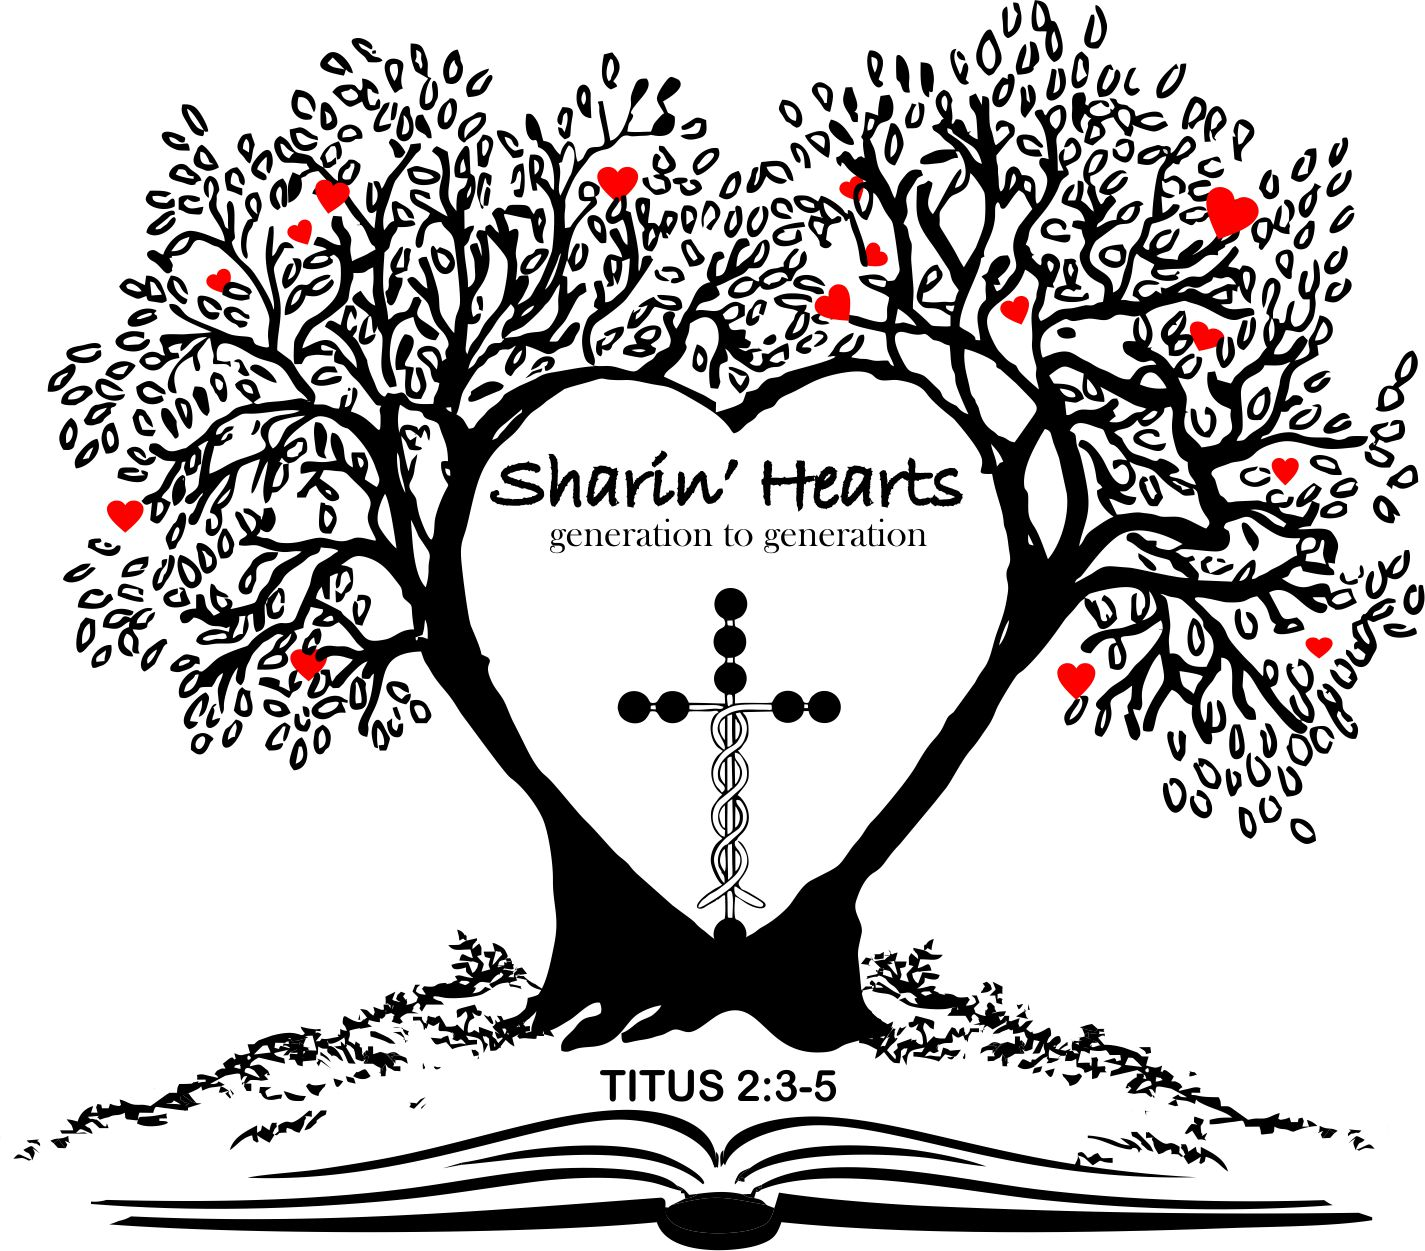 Sharin' Hearts Ministry